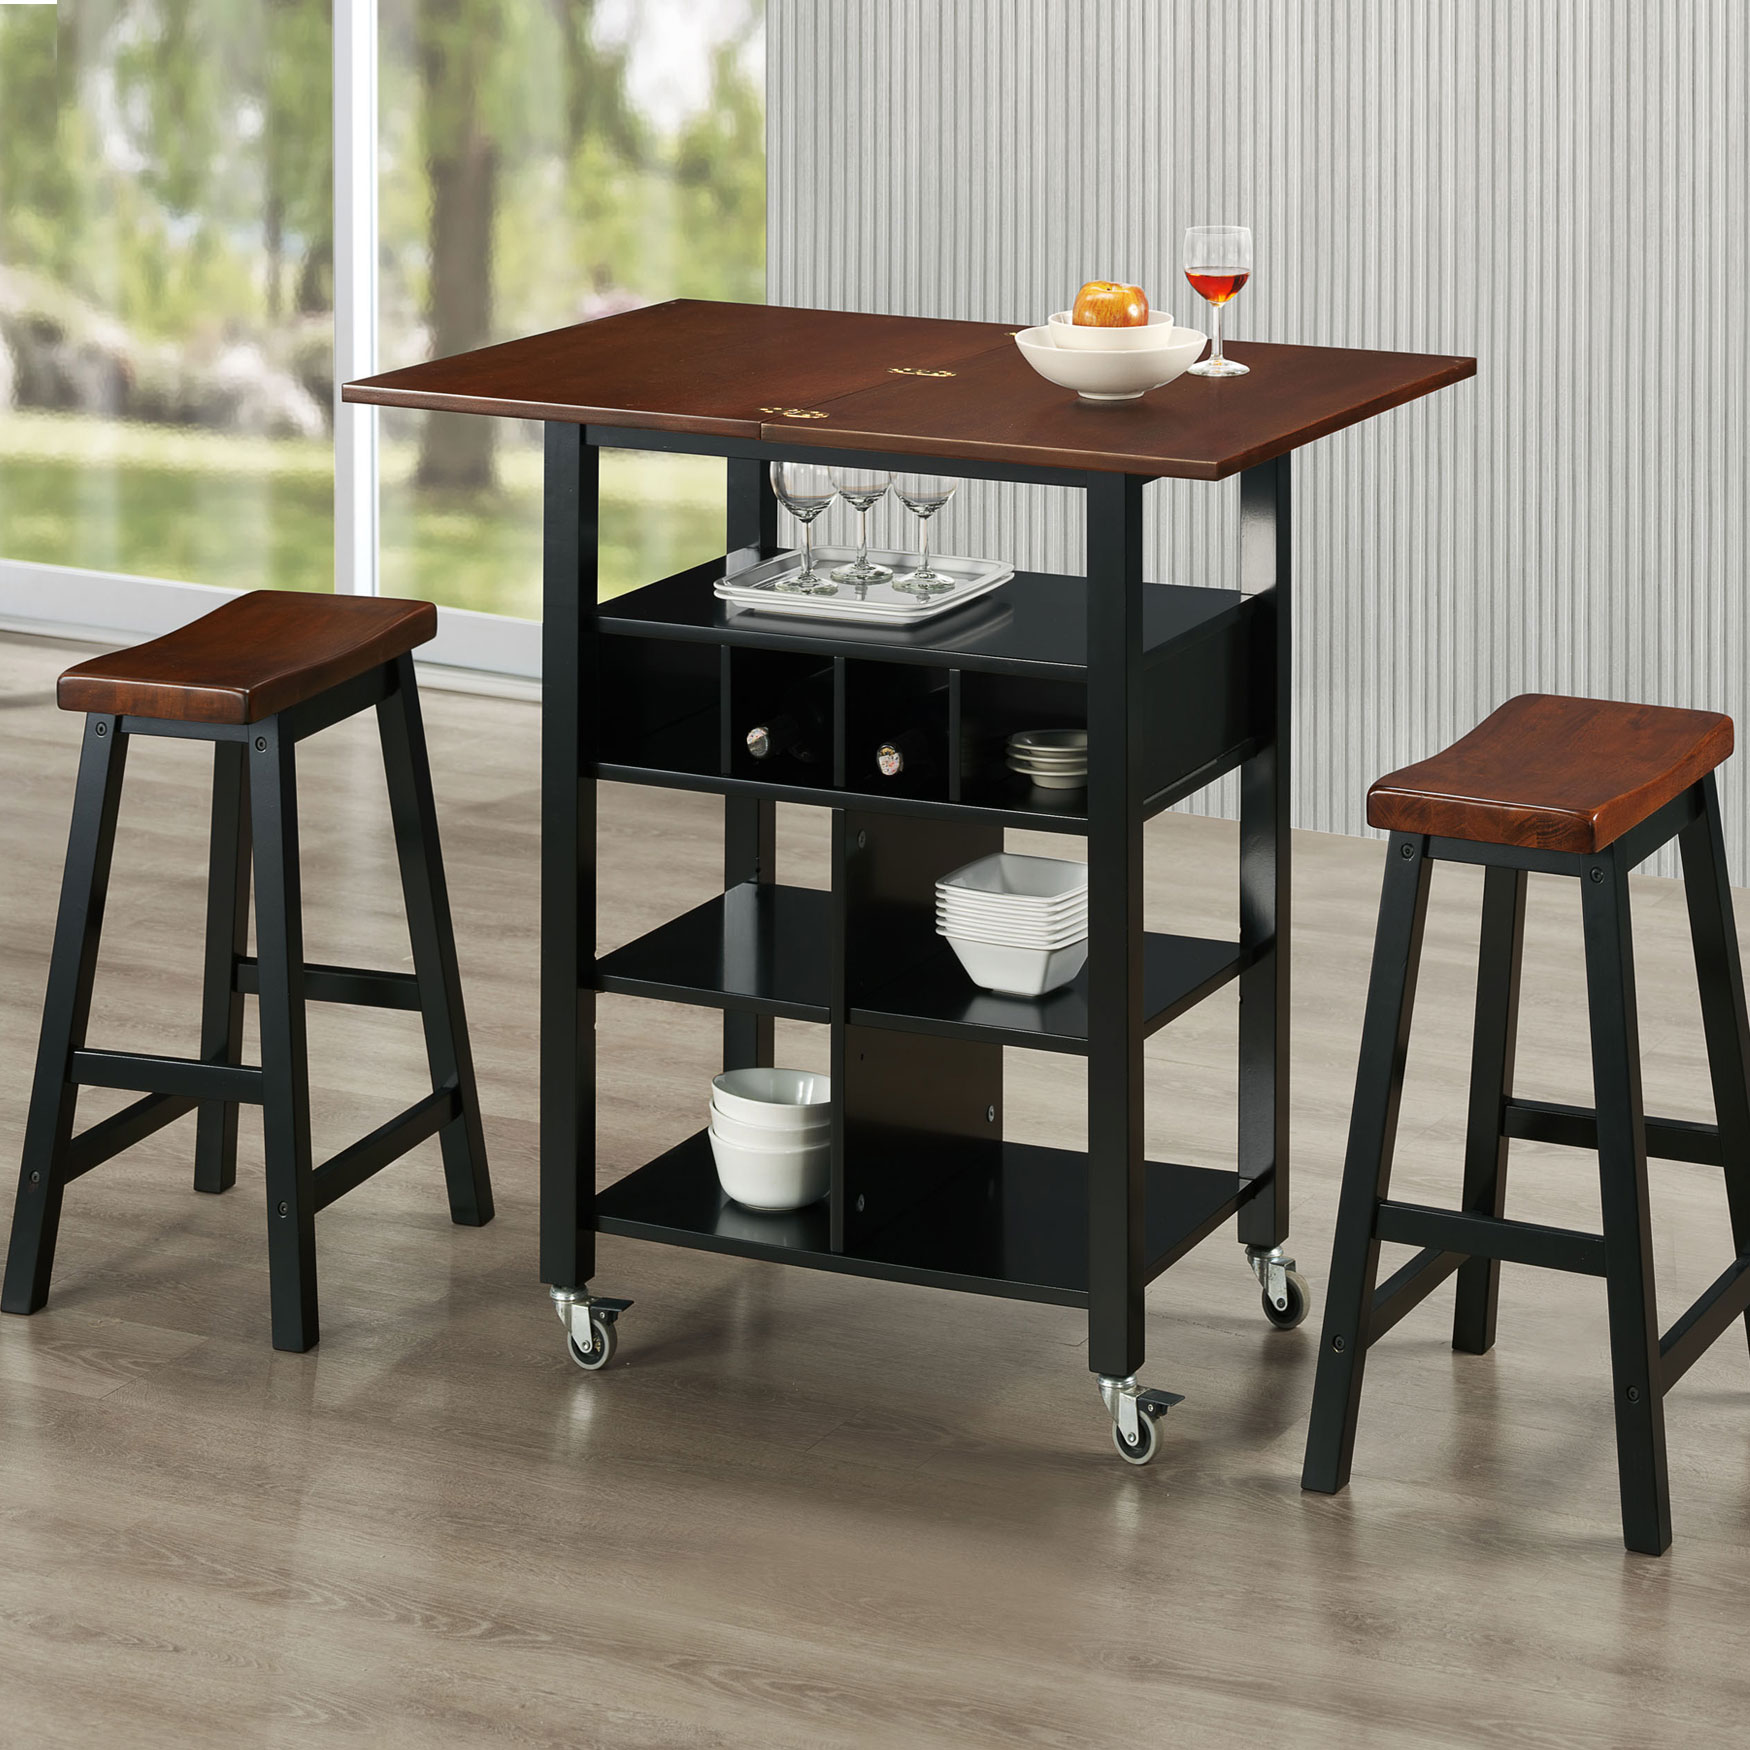 Kitchen Island and Stools Set, BLACK MAHOGANY